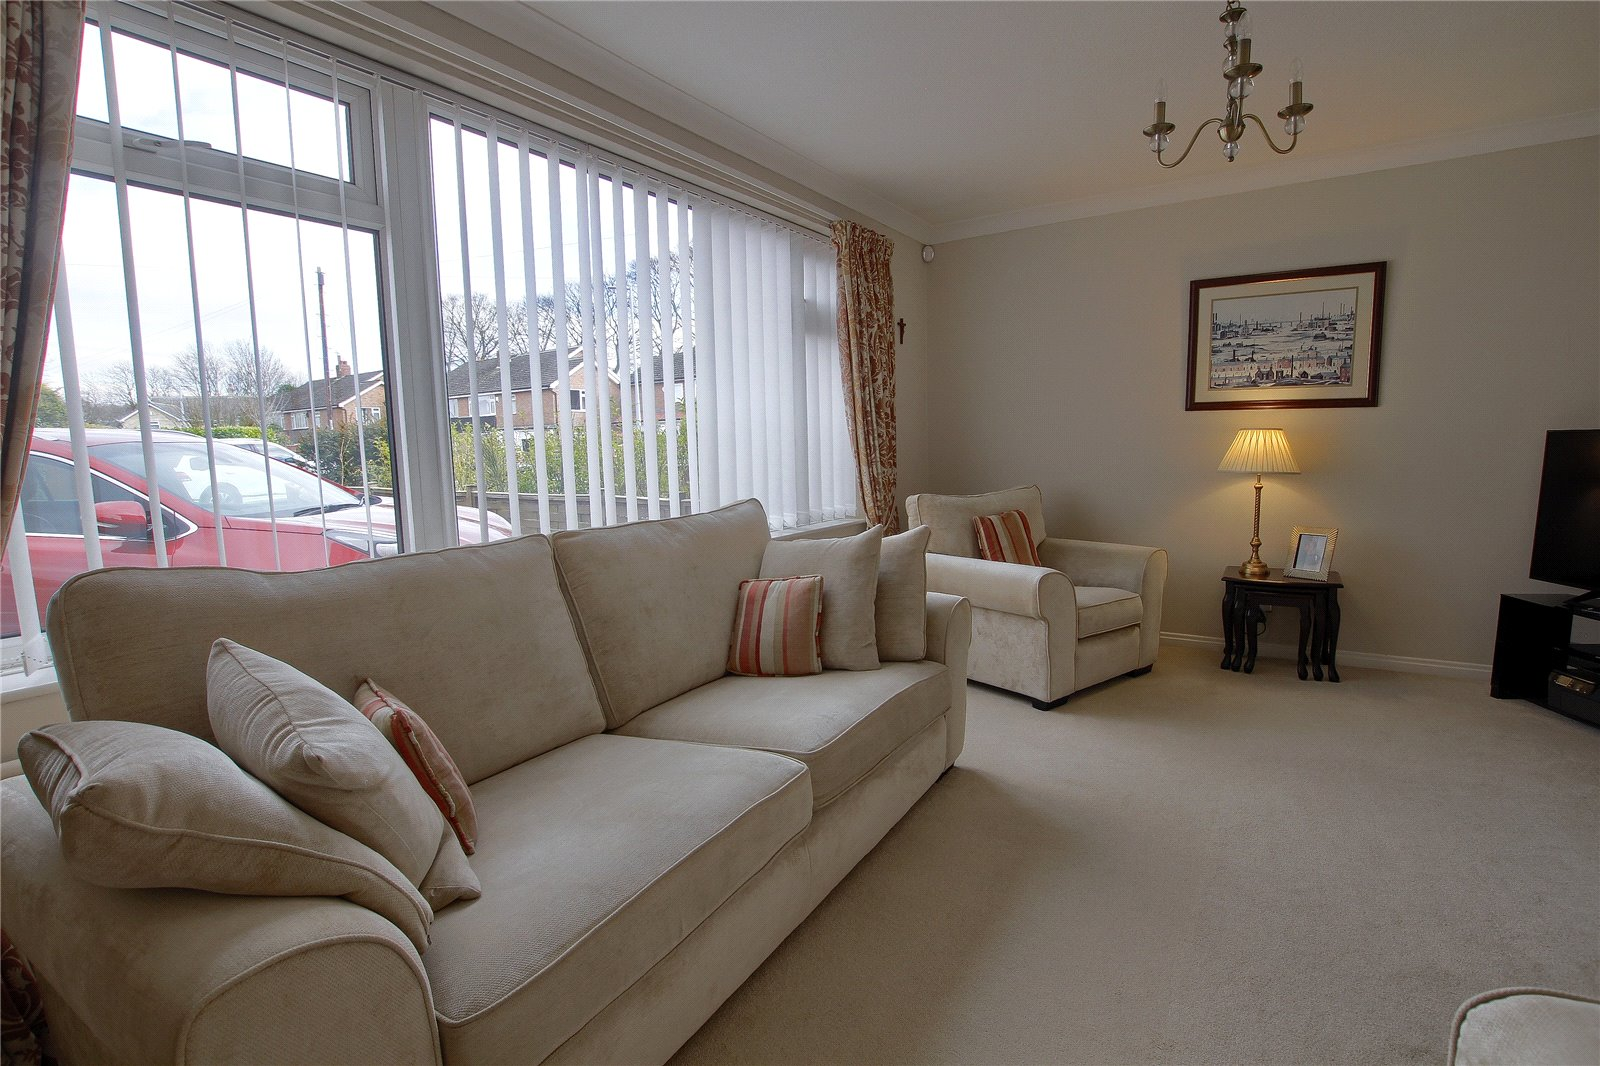 4 bed house for sale in Oldford Crescent, Acklam  - Property Image 8